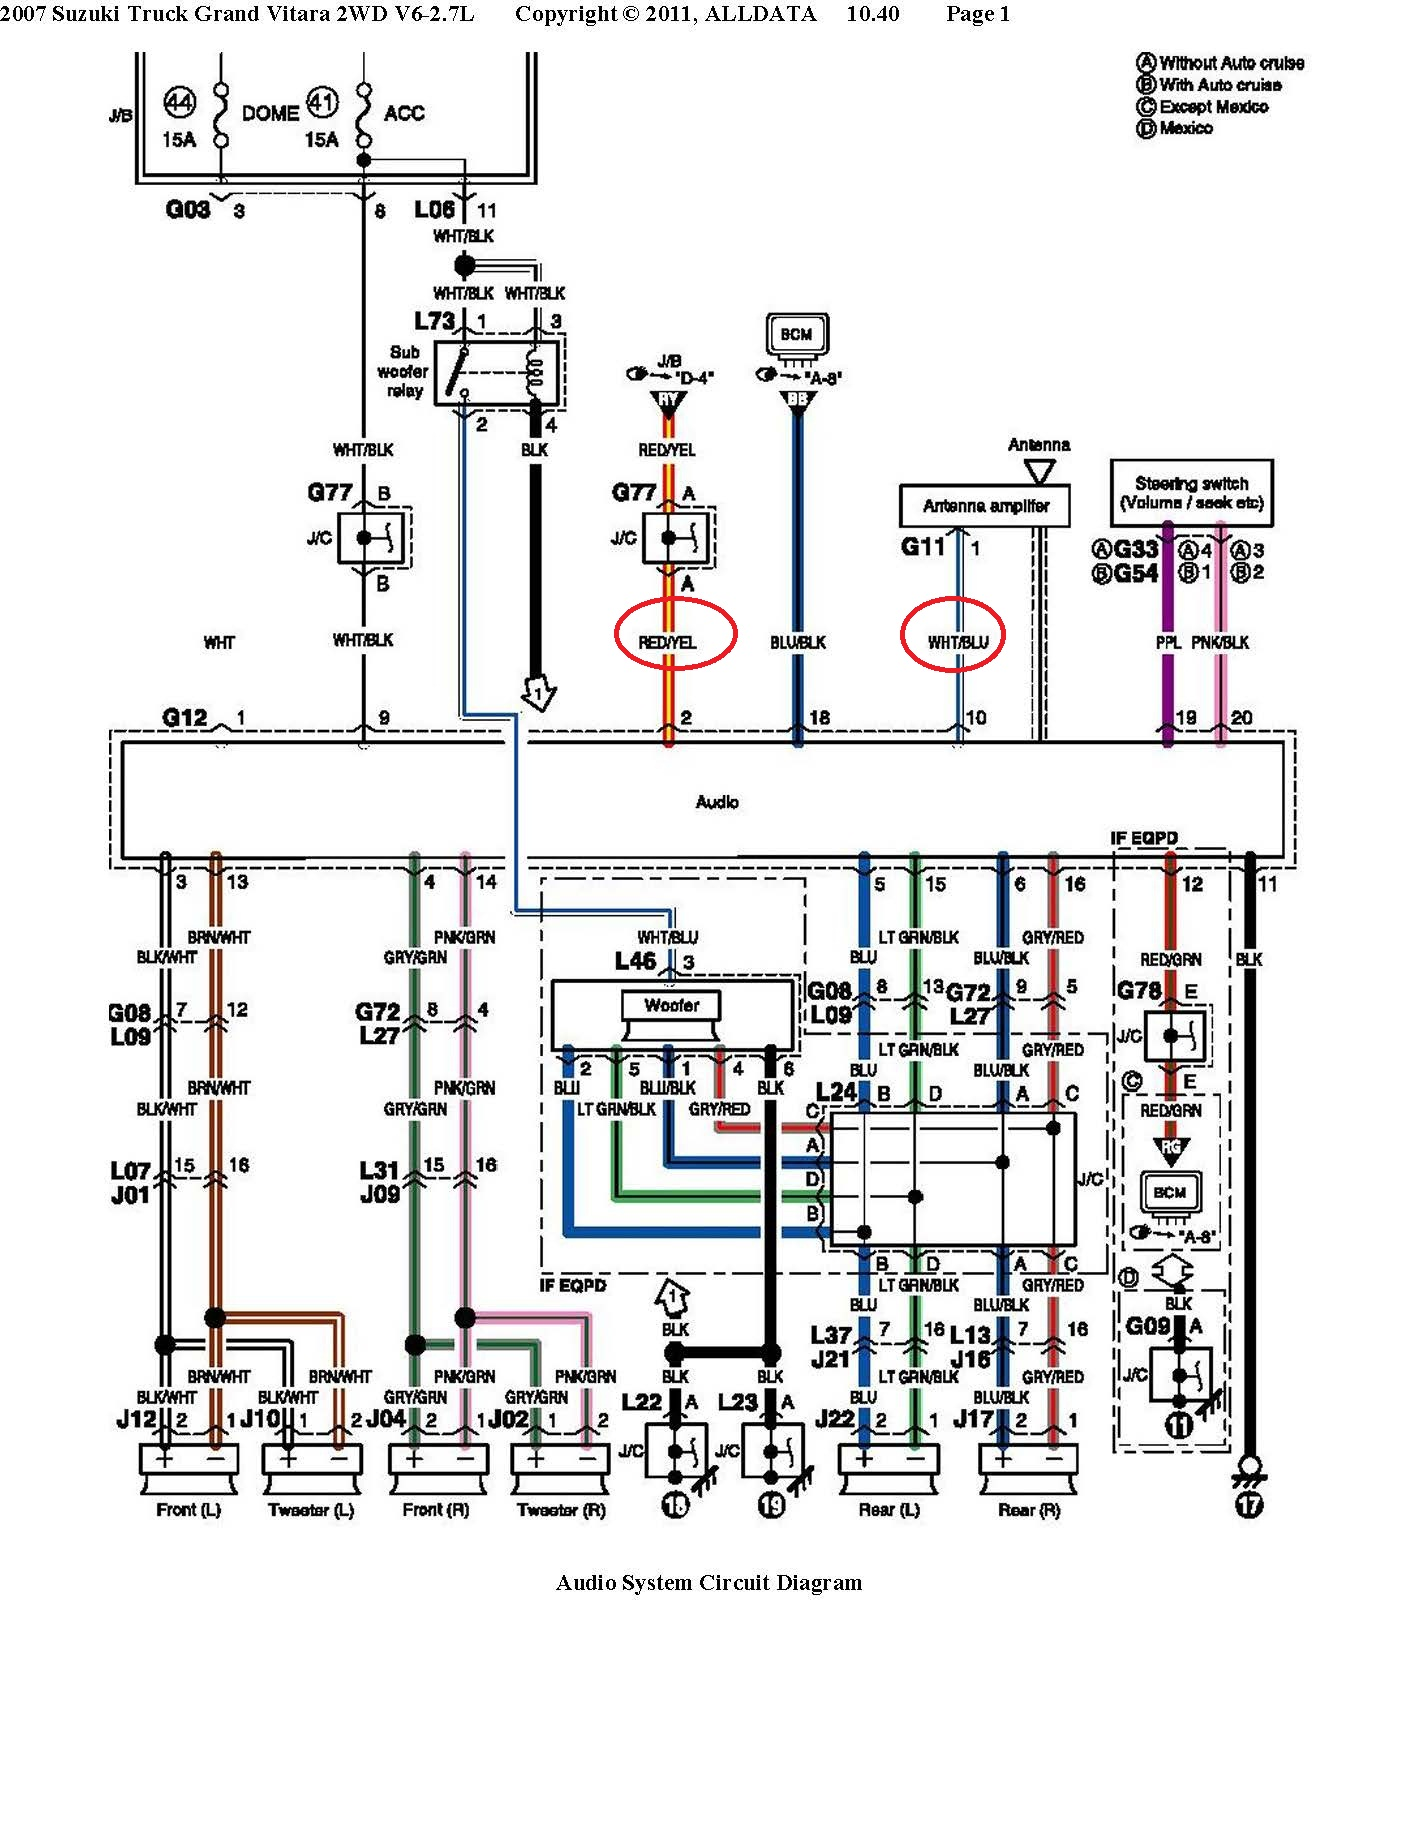 Suzuki Car Radio Stereo Audio Wiring Diagram Autoradio Connector Harness Color On Wires Wire Installation Schematic Schema Esquema De Conexiones Stecker Konektor Connecteur Cable